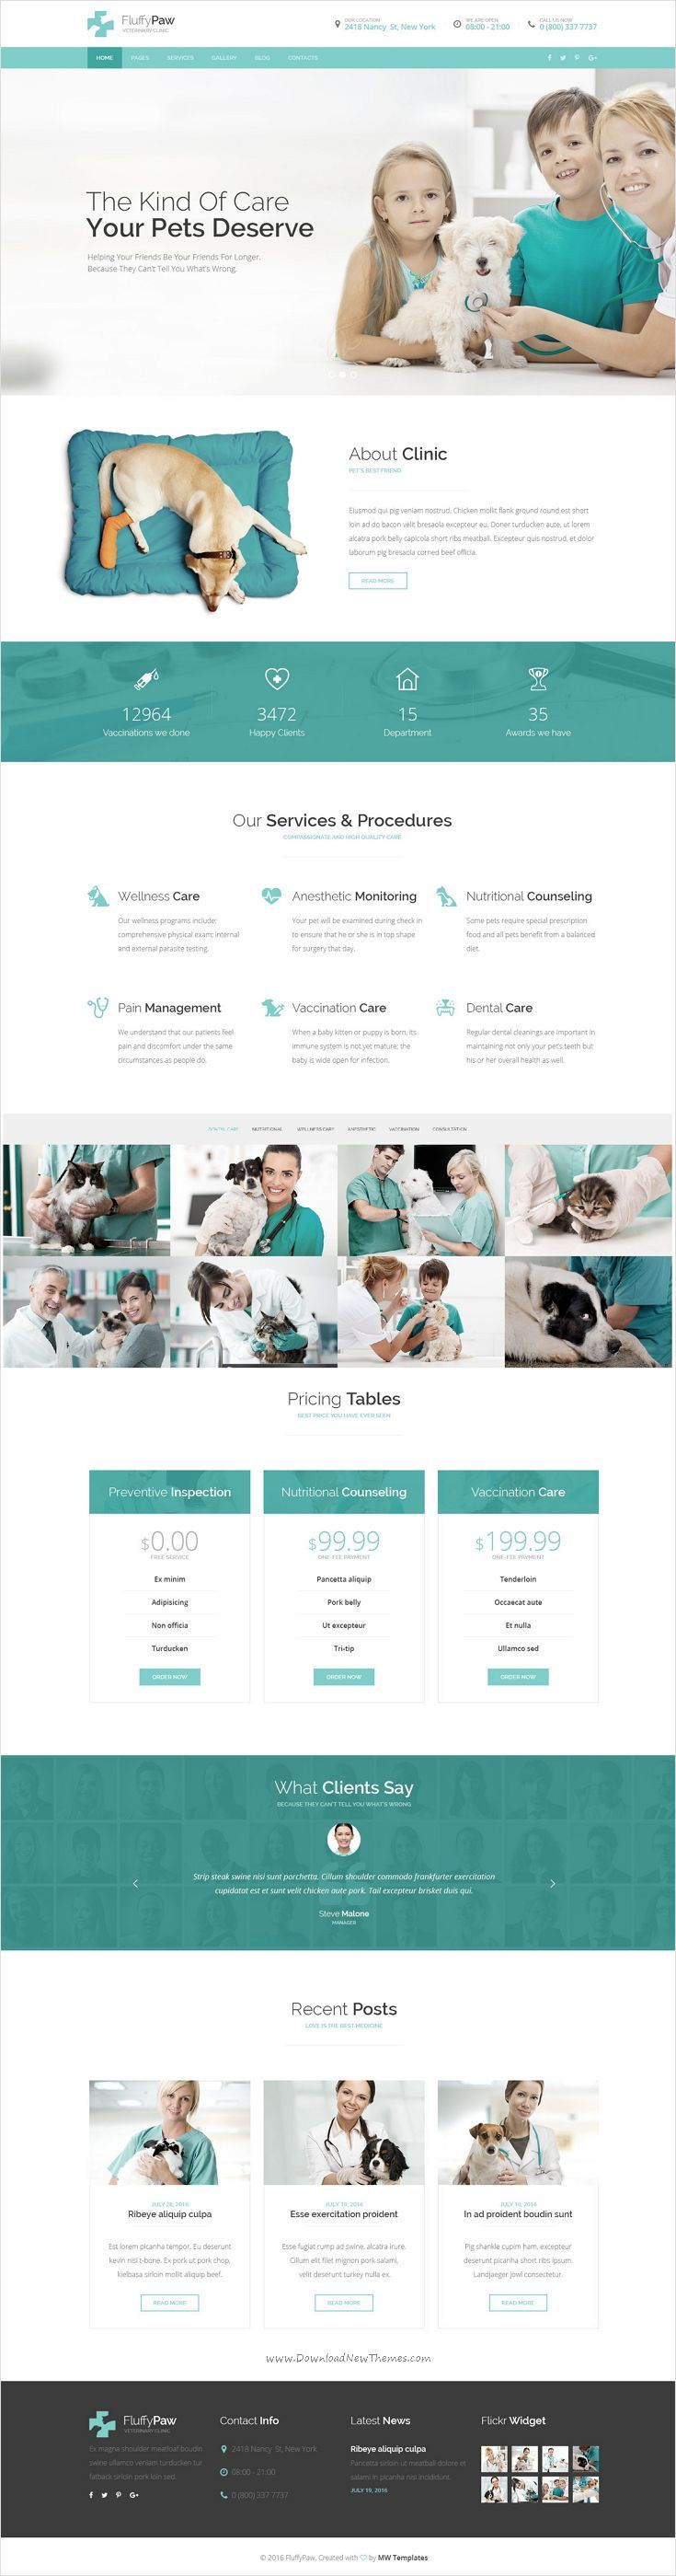 FluffyPaw is modern design PSD template for veterinary and petcare clinic website. Brought to you by WebsitesYES.com